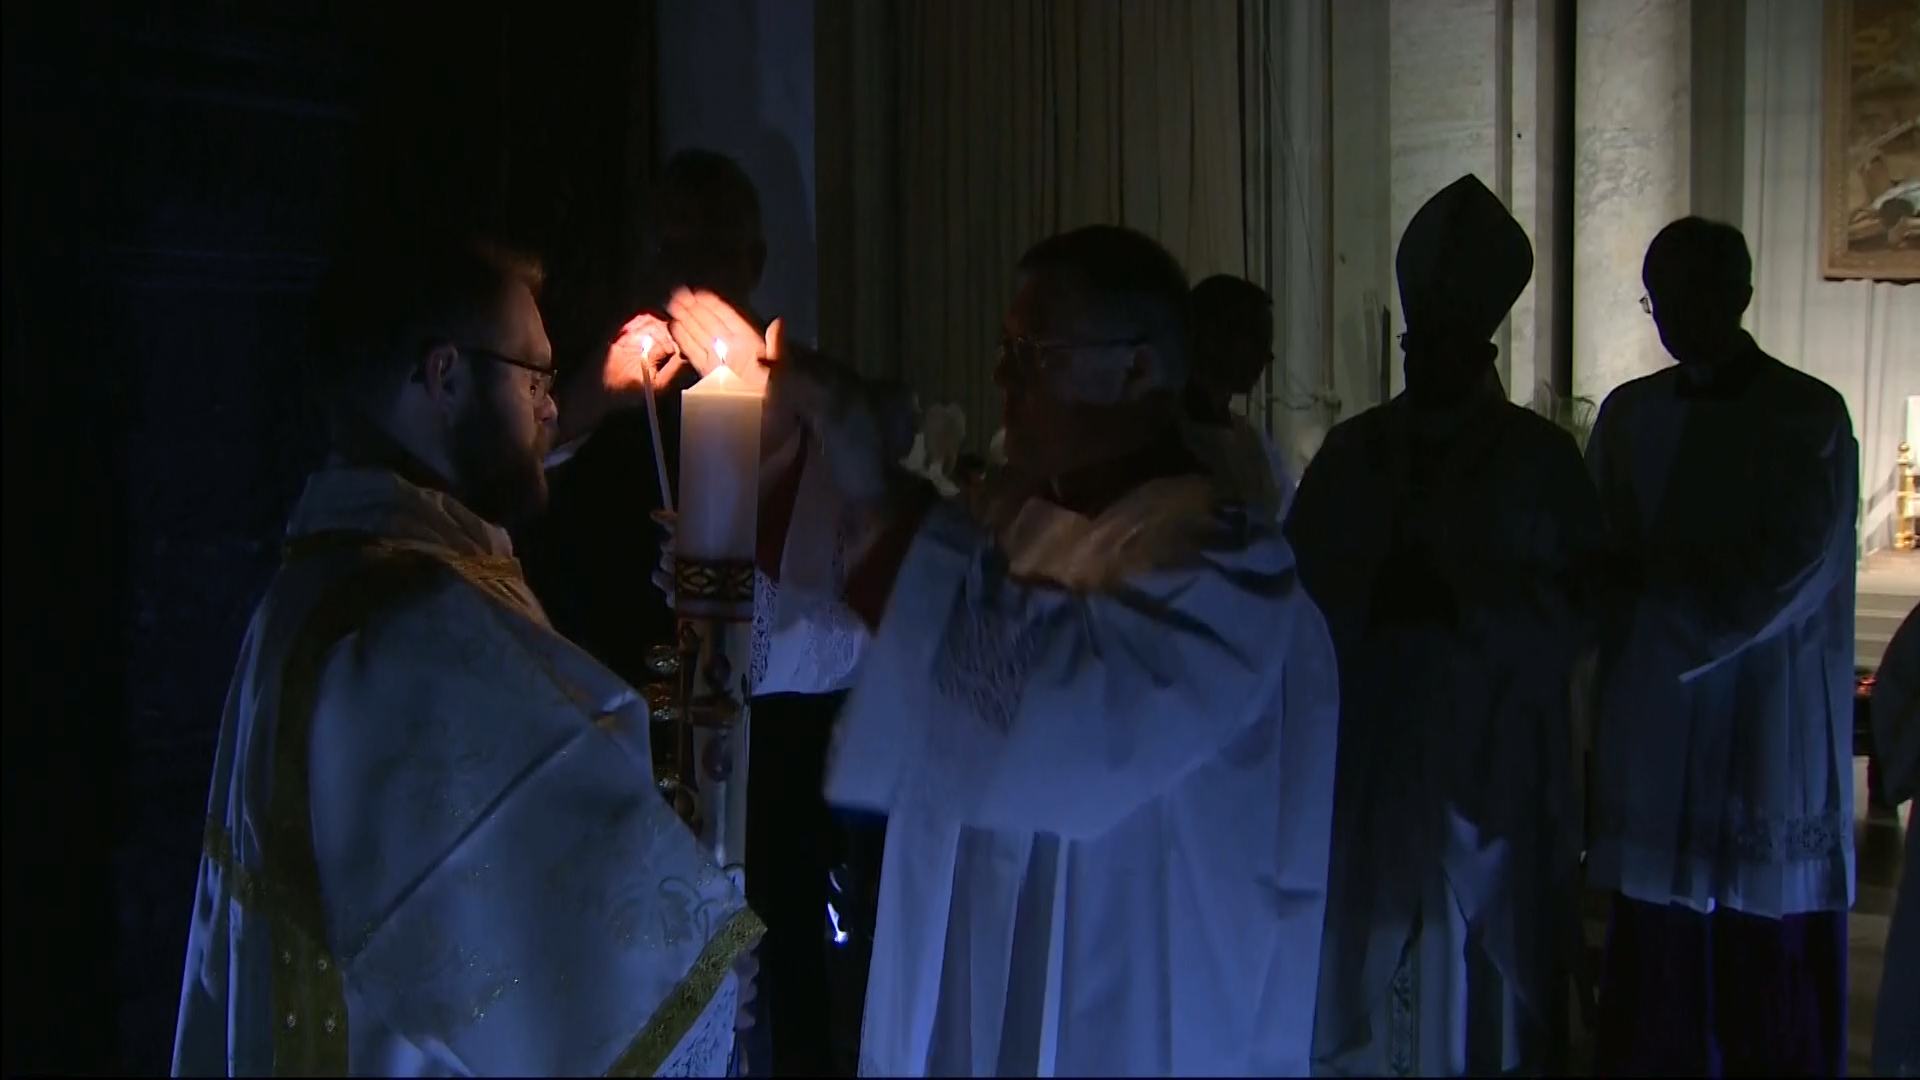 Passing on the light of Christ at Vatican Easter Vigil Mass.